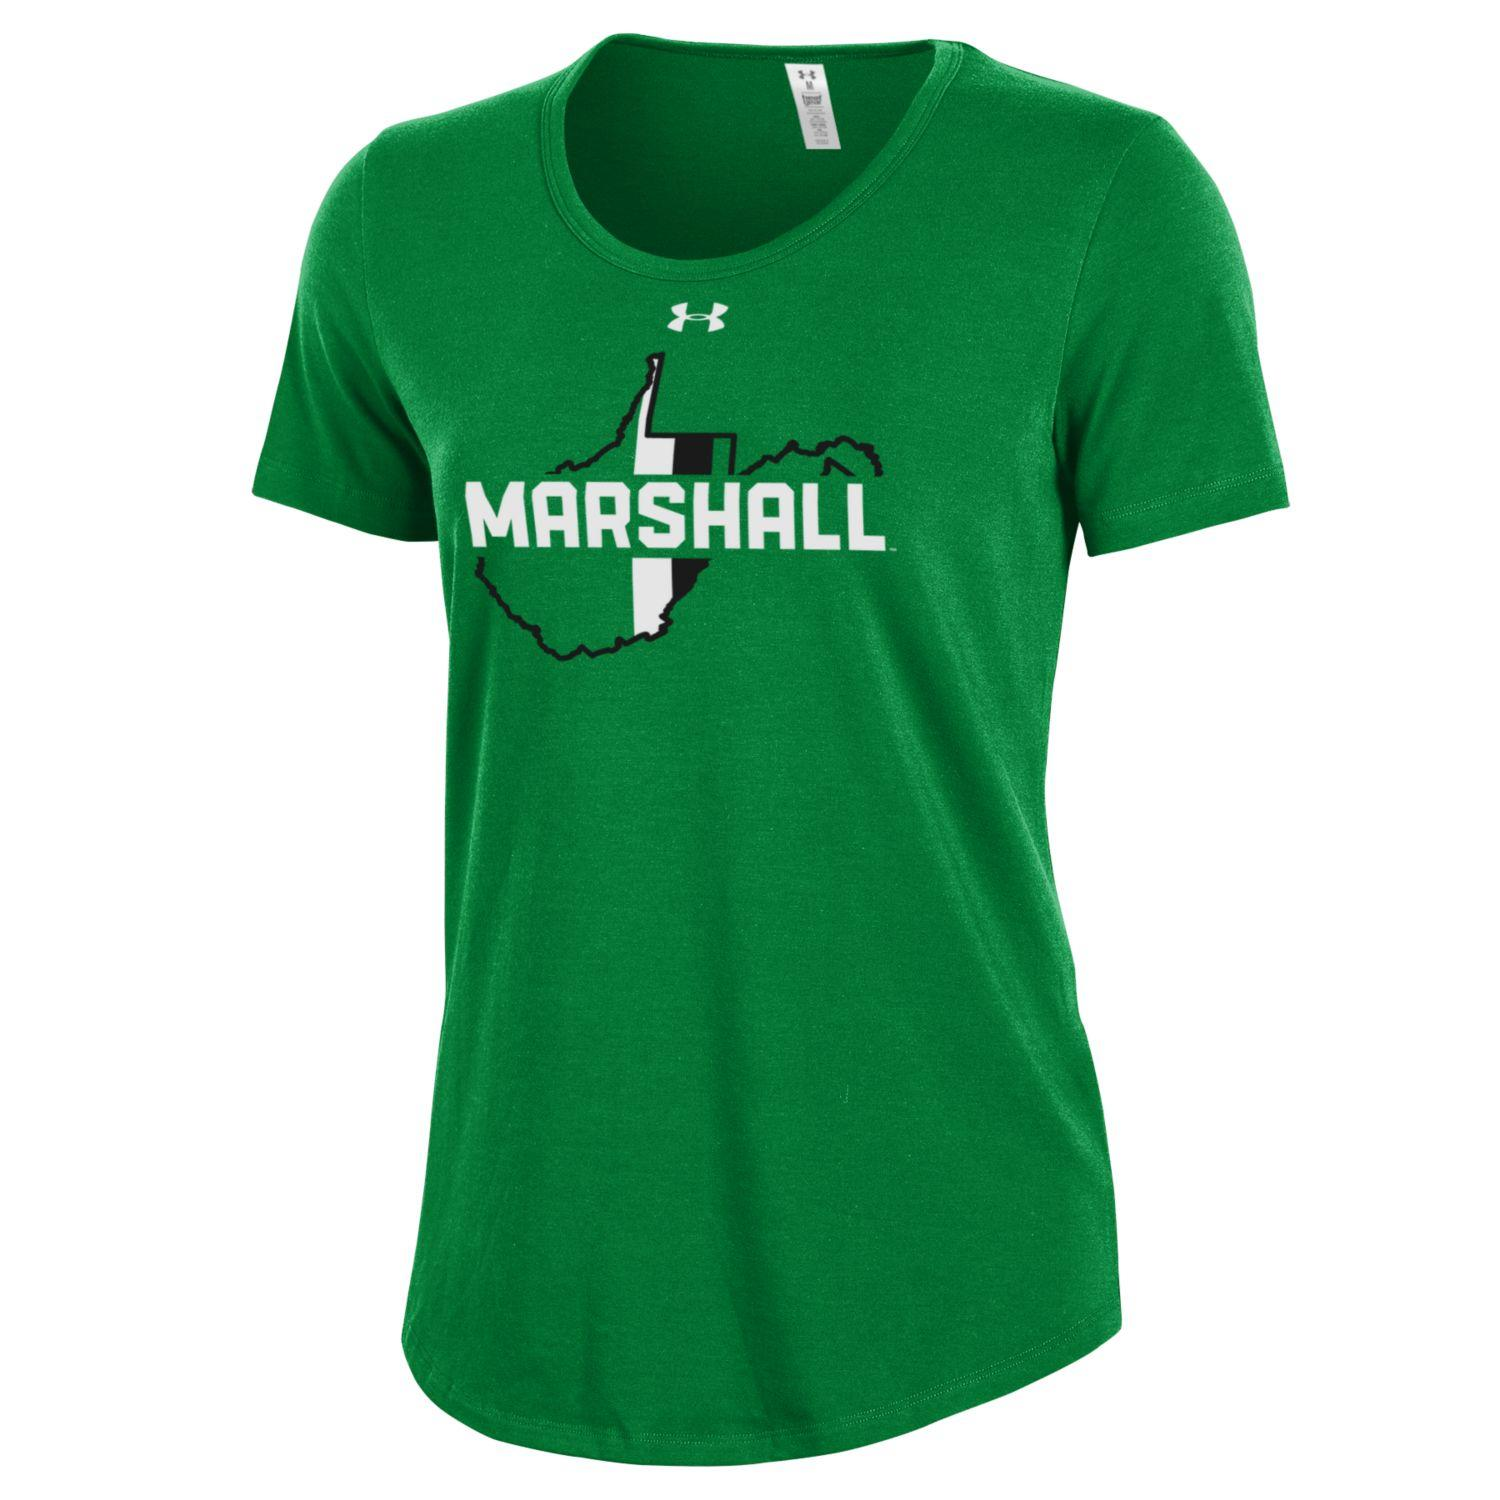 26580 <BR> Under Armour <br> MU STATE S/S <br>$32.99